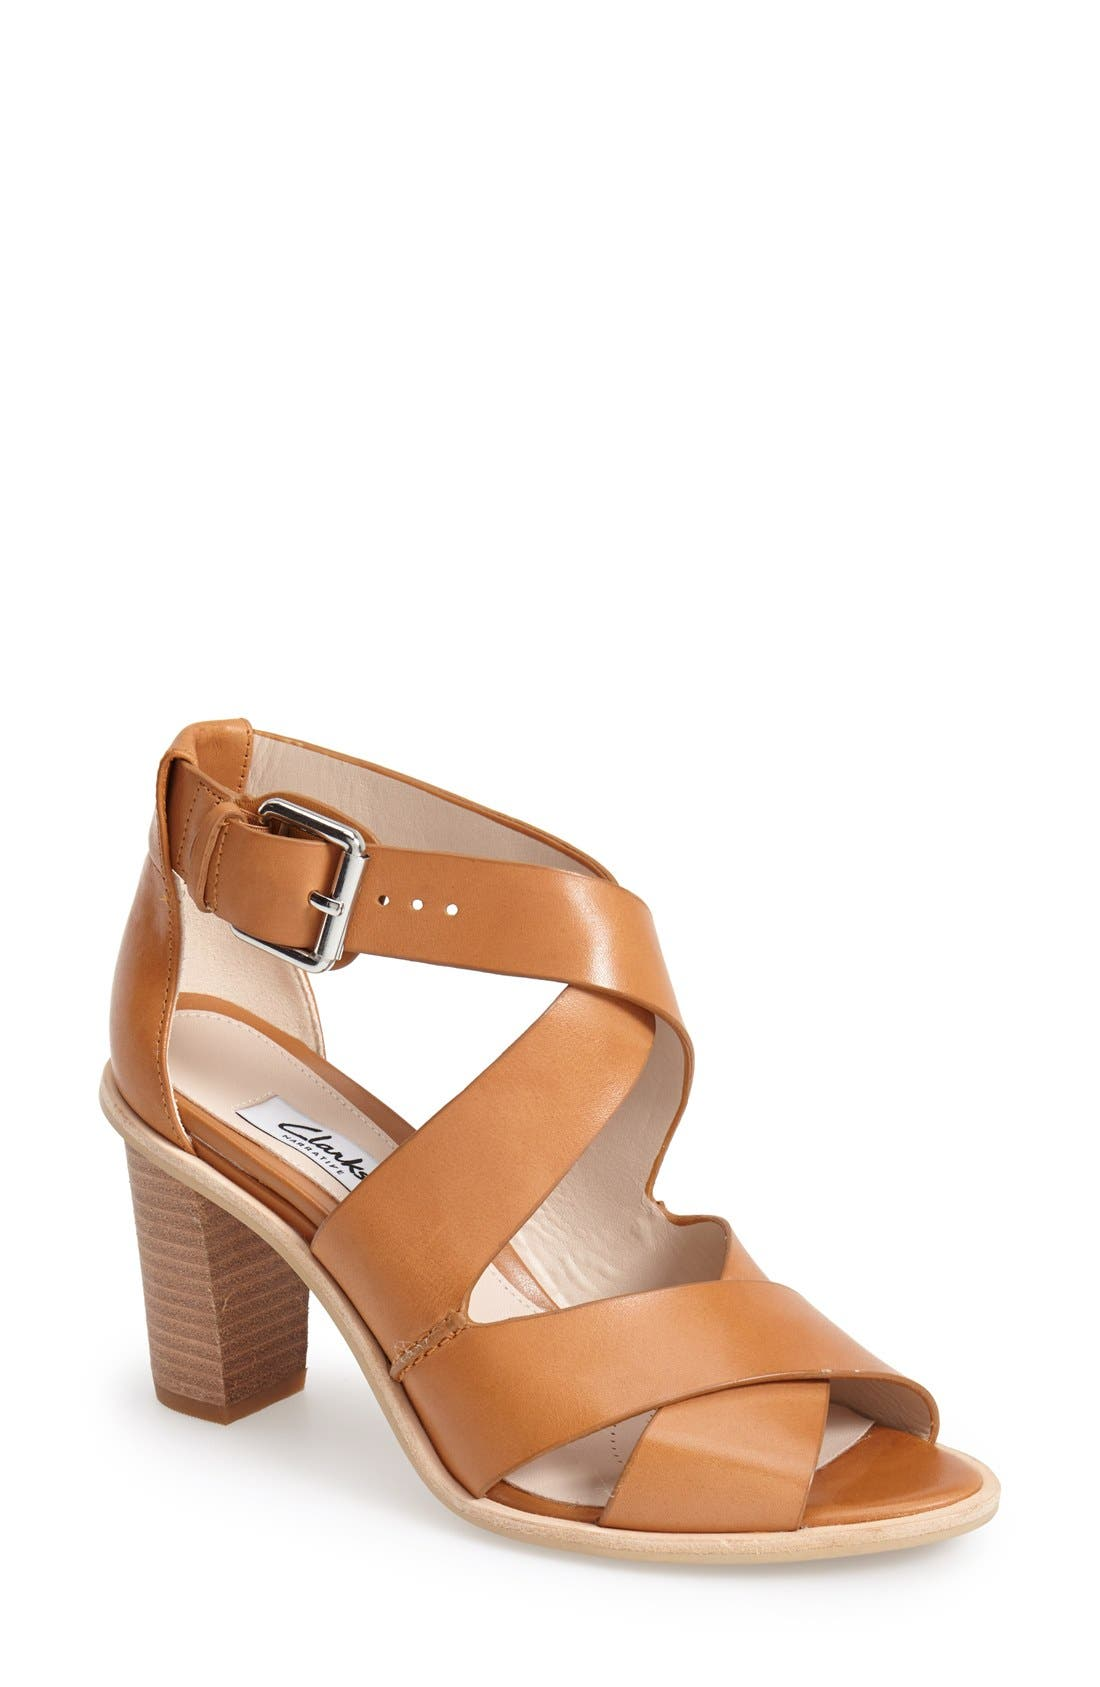 Alternate Image 1 Selected - Clarks® Narrative 'Oriana Bess' Sandal (Women)